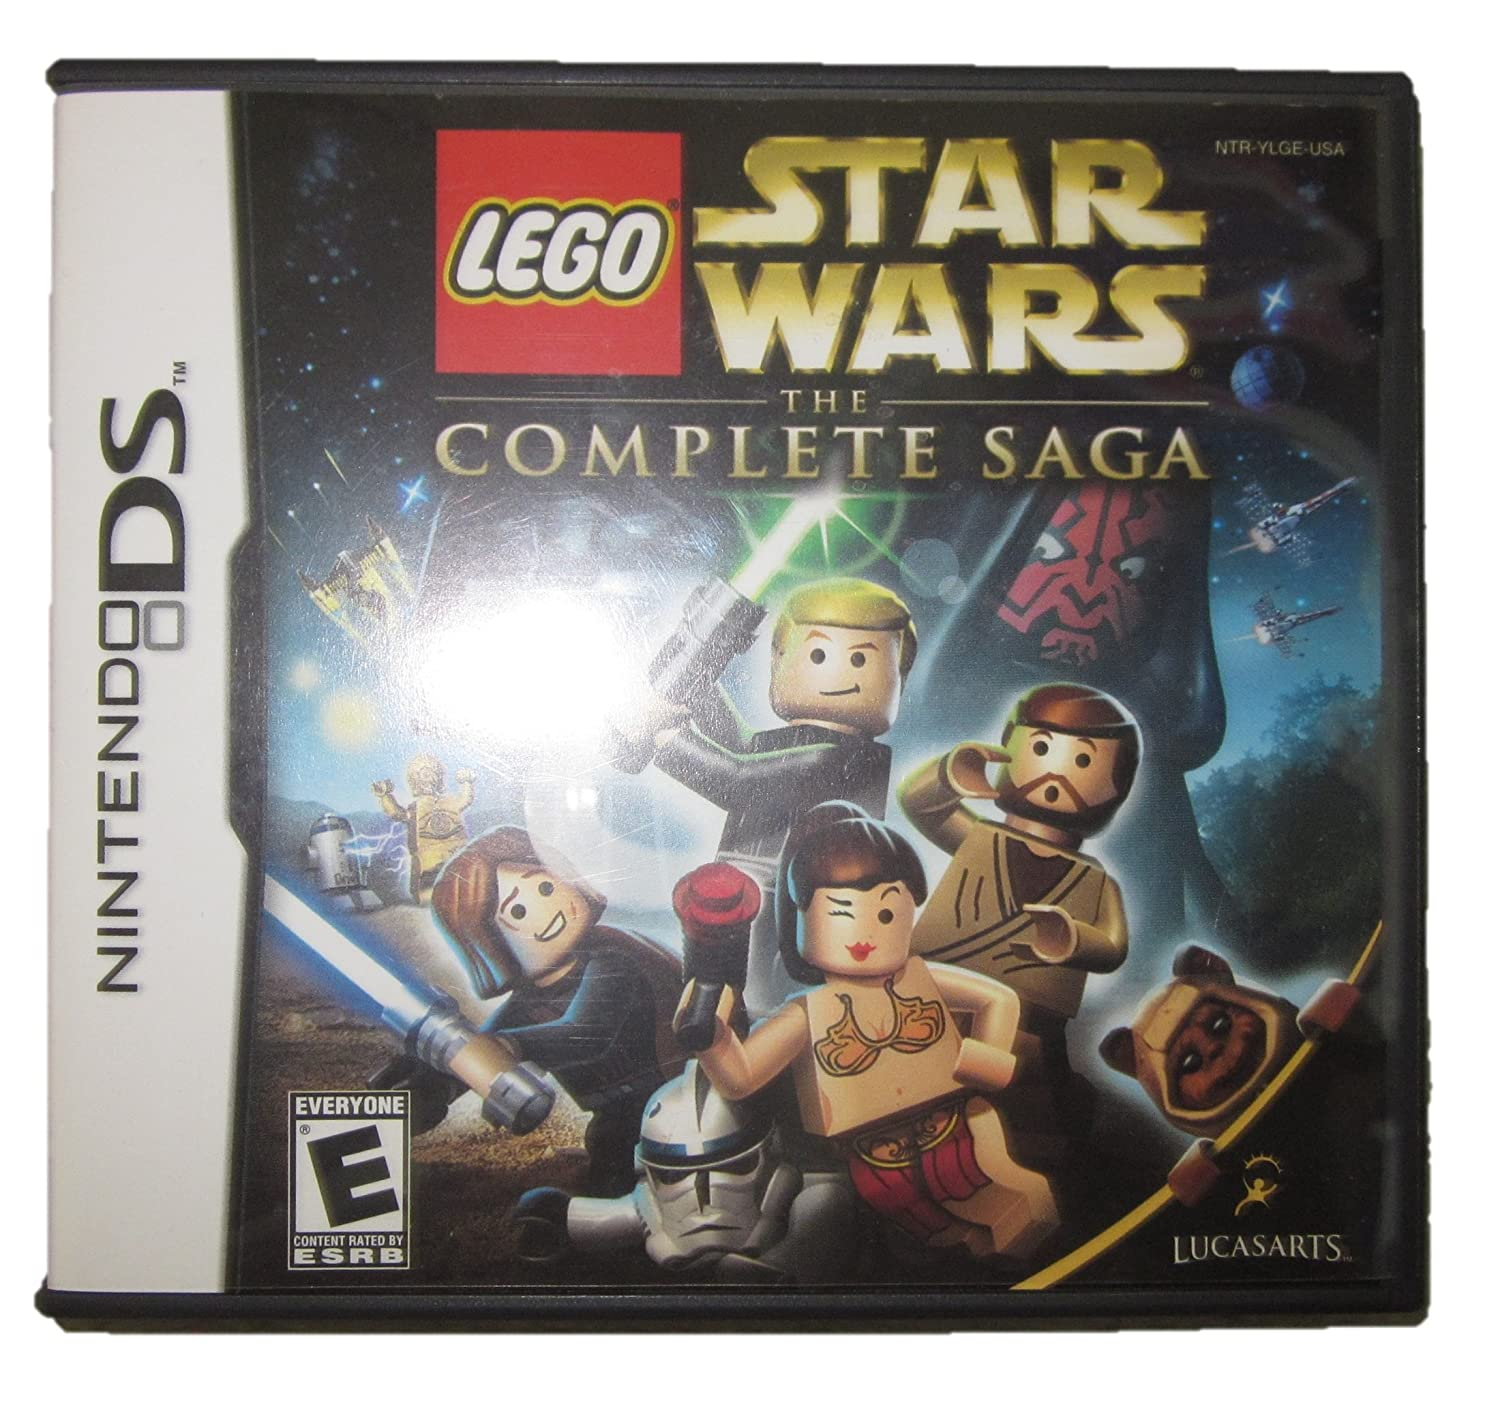 Lego Star Wars: The Complete Saga, Nintendo DS, Case and Manual only (no game cartridge)